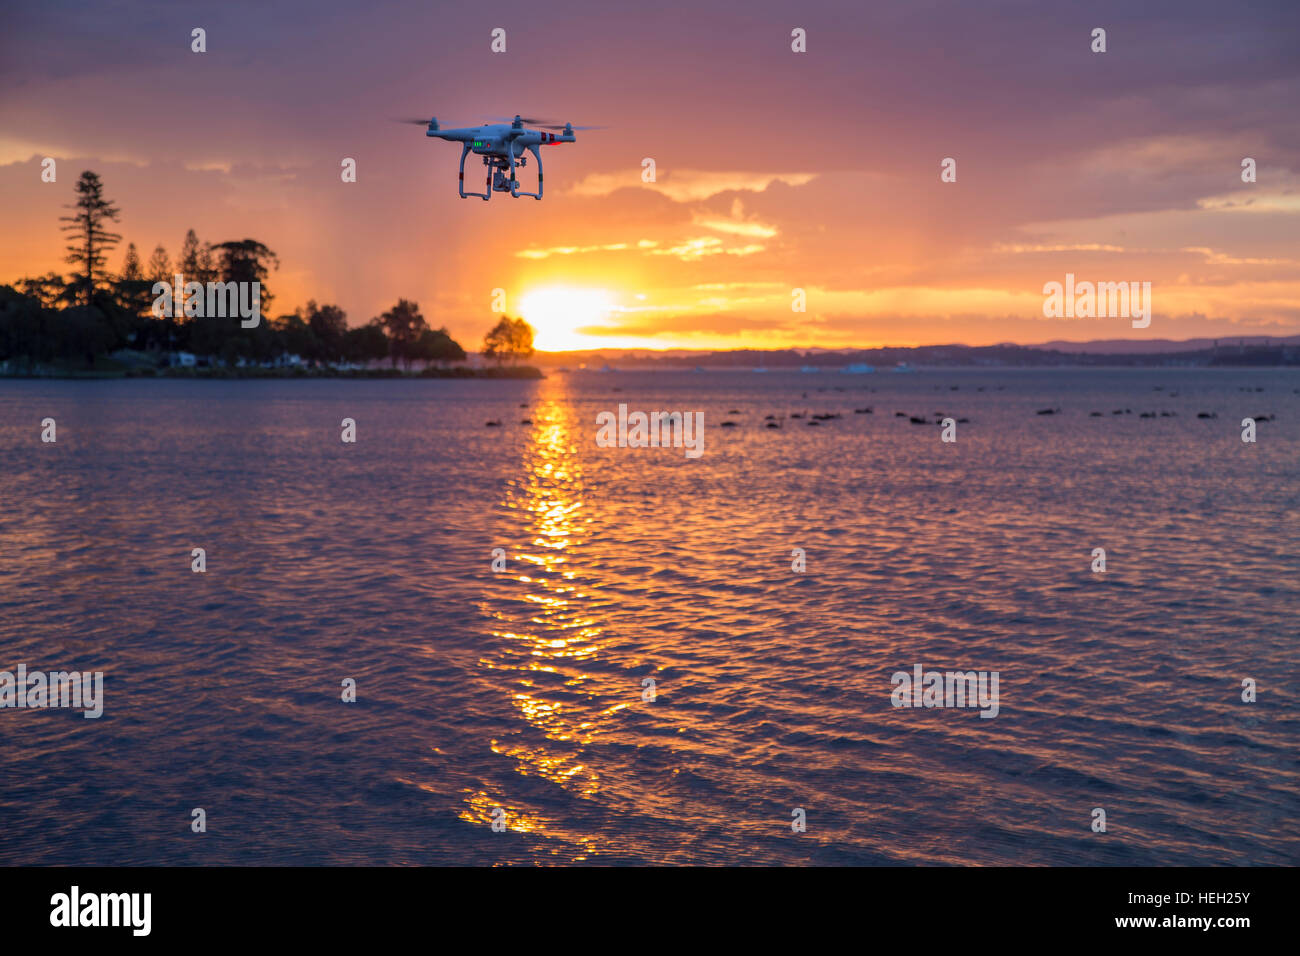 Drone flying at Sunset - Stock Image